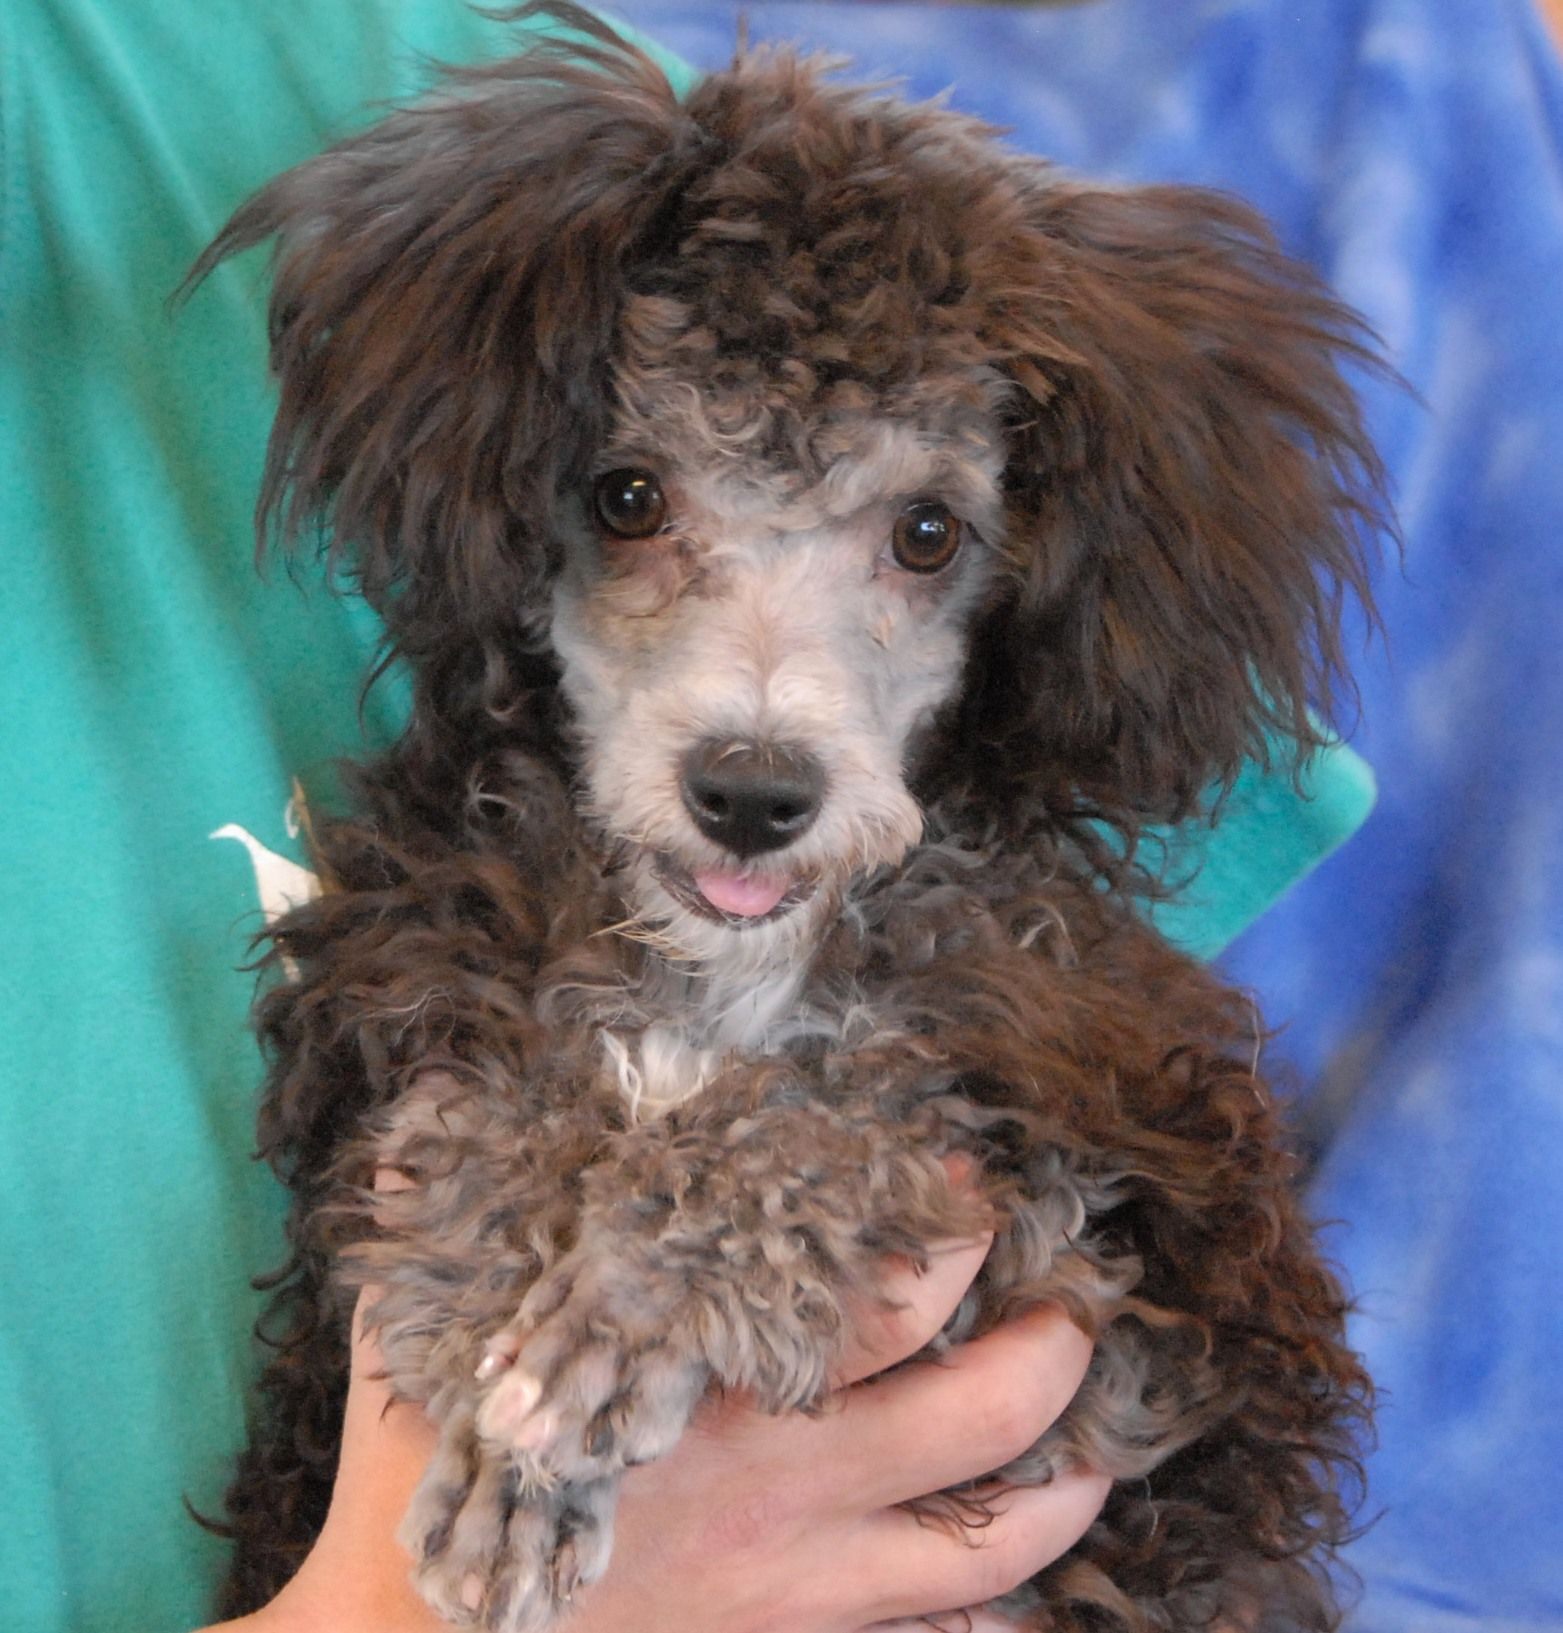 Kama Is A Precious Miniature Poodle Mix Puppy Larger Than Toy Poodles Debuting For Adoption Today At Nevad Poodle Mix Puppies Miniature Poodle Mix Toy Poodle